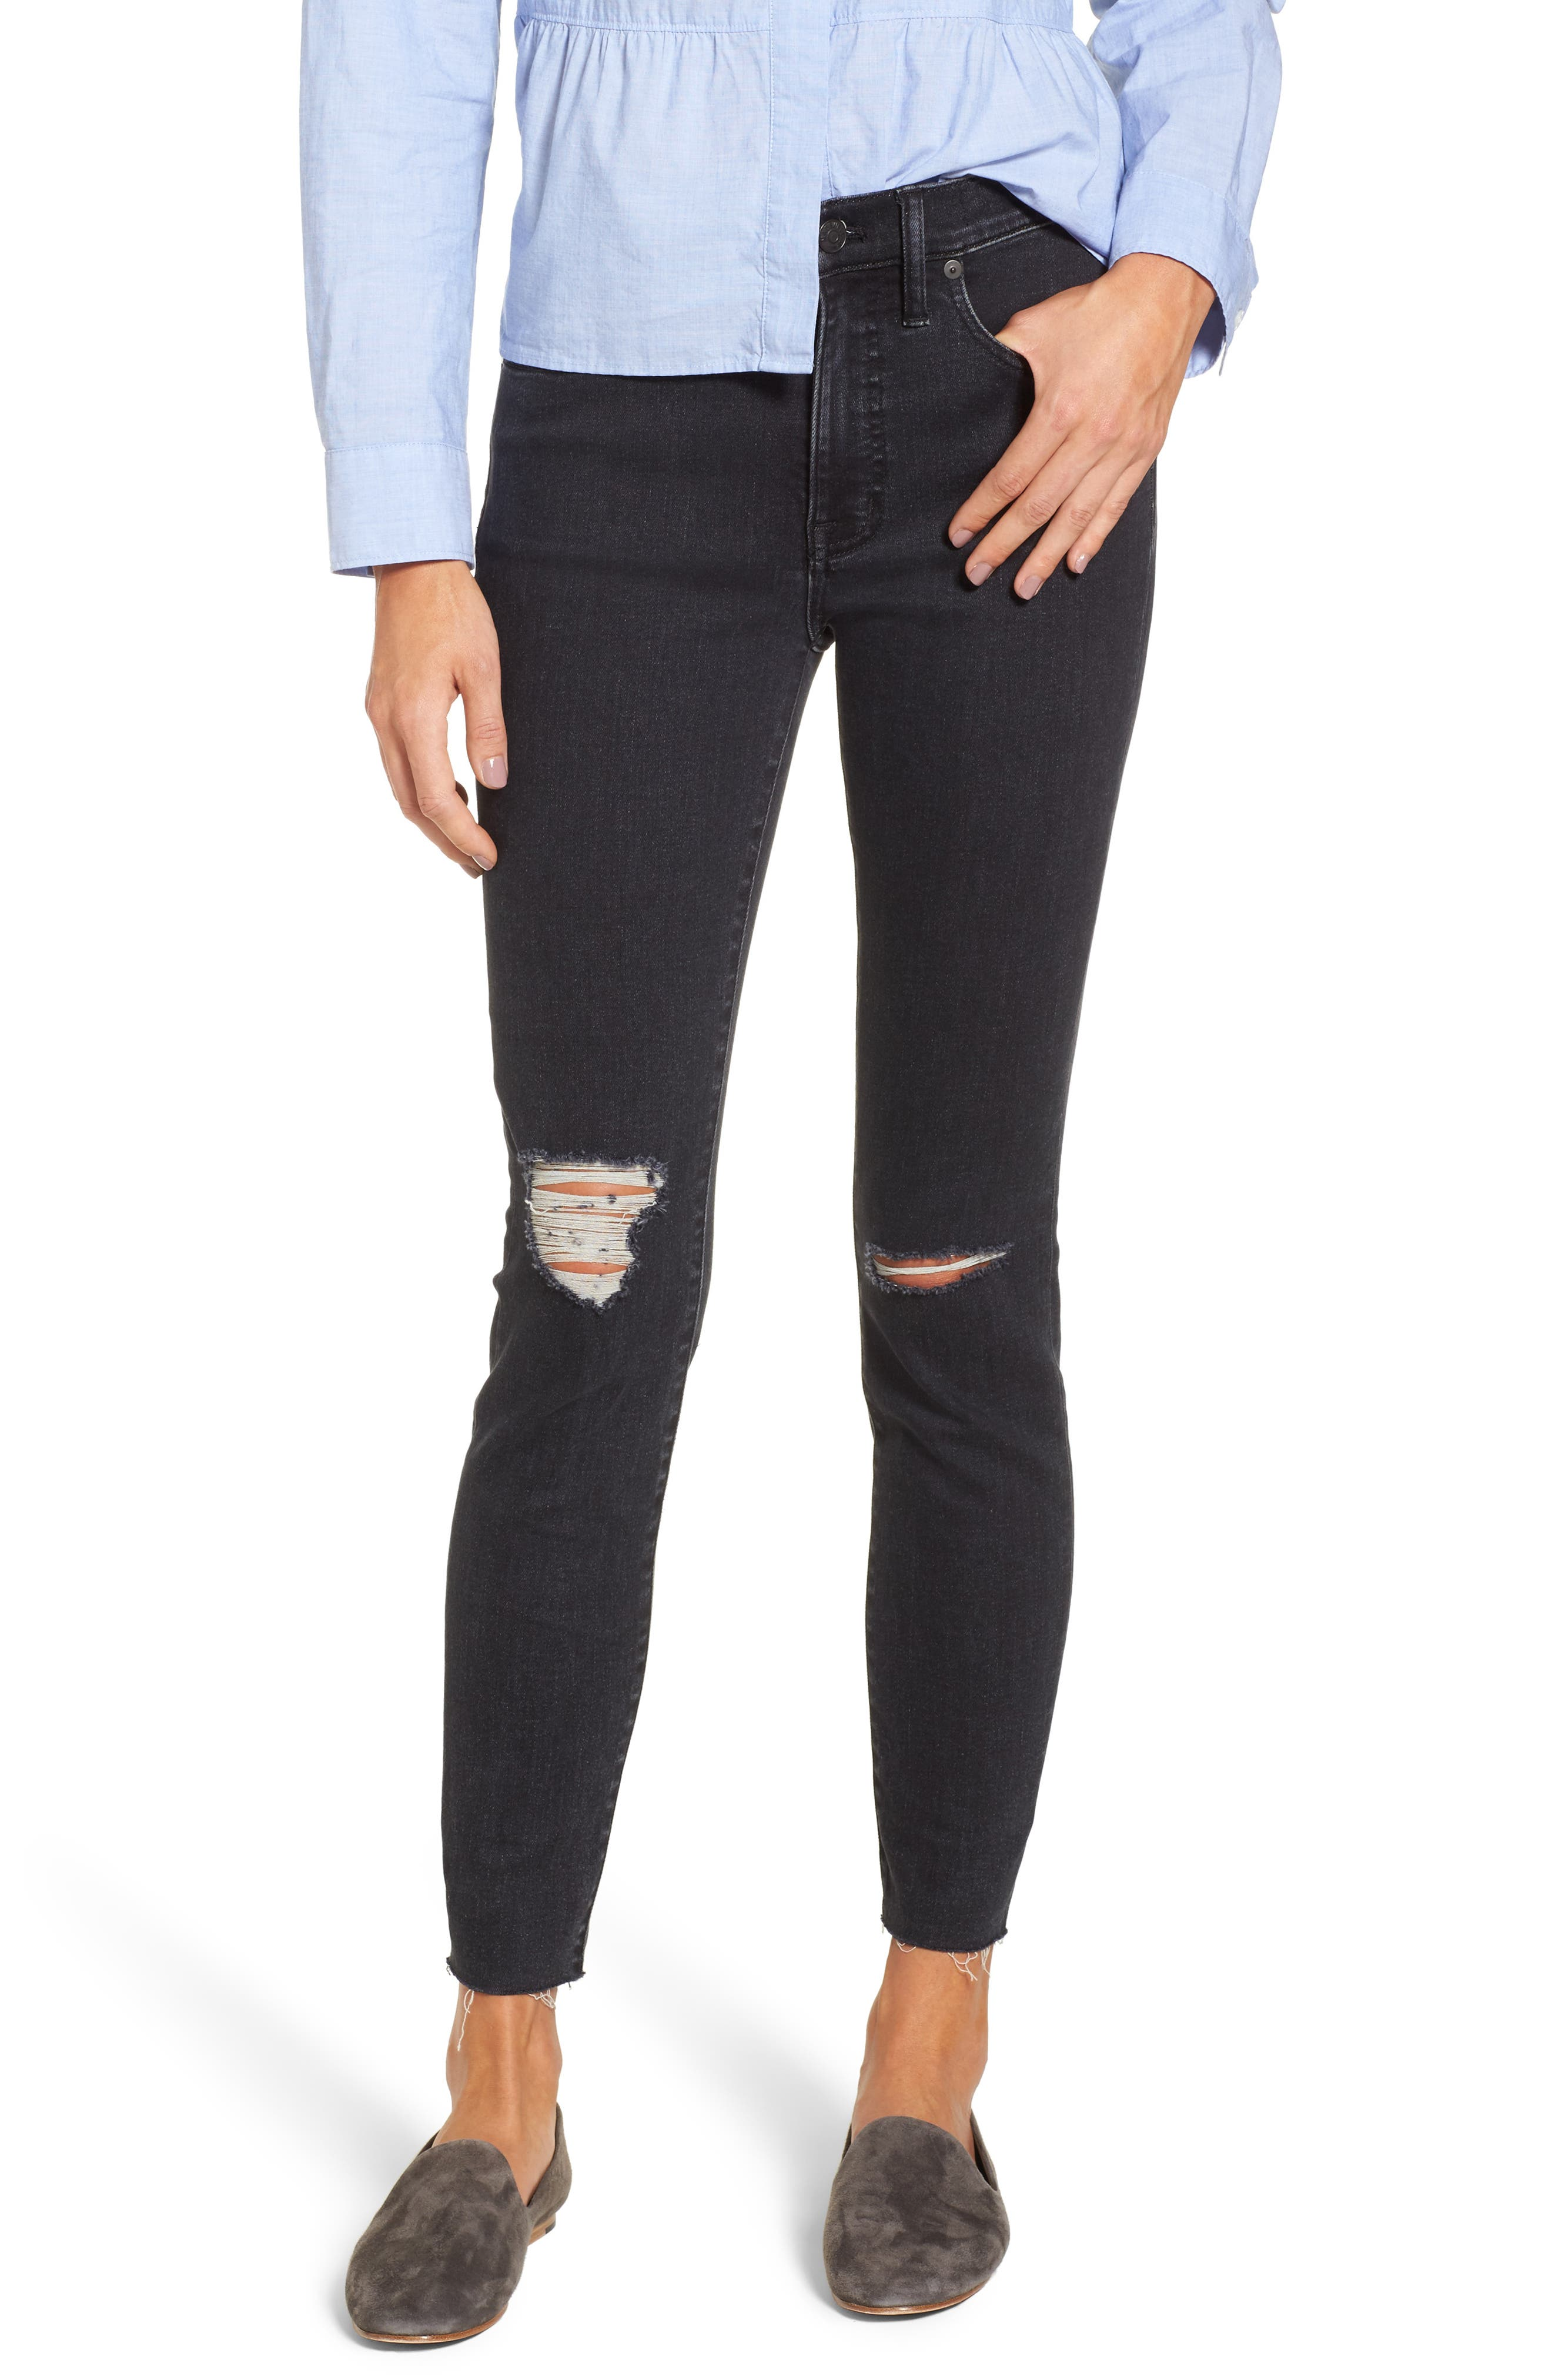 Main Image - Madewell 9-Inch High Rise Ripped Skinny Jeans (Ruth)